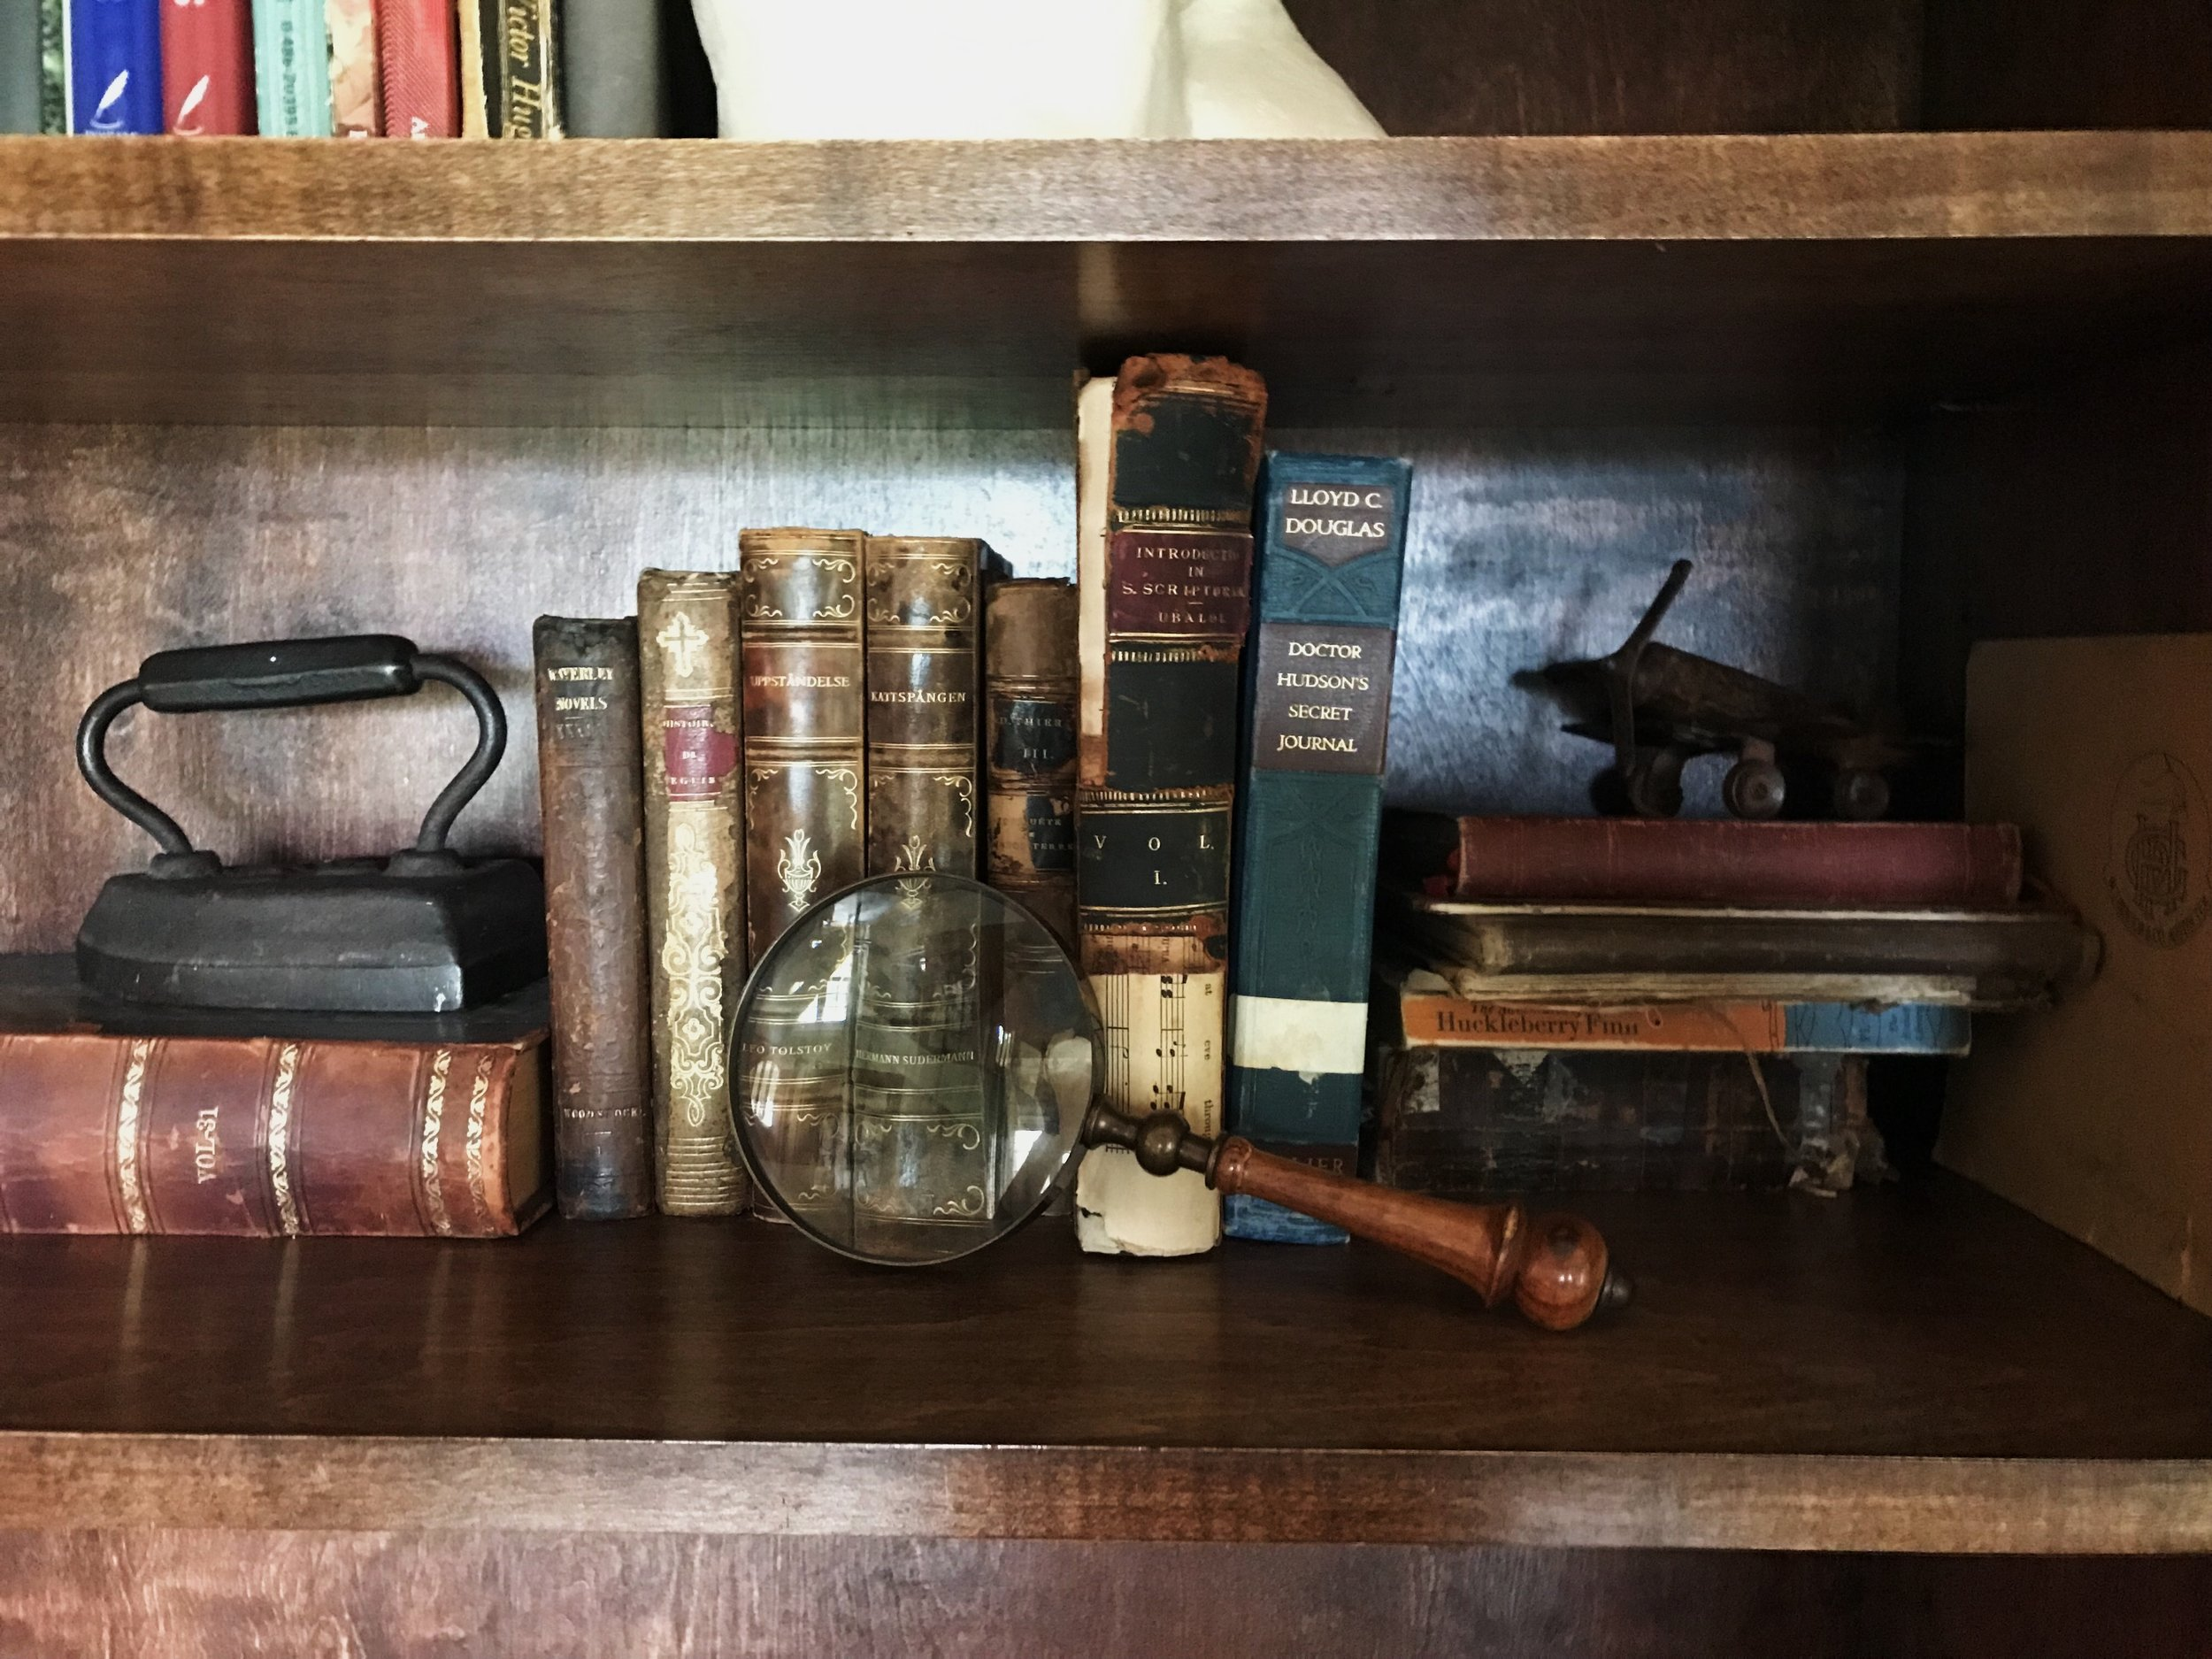 collected books and treasures